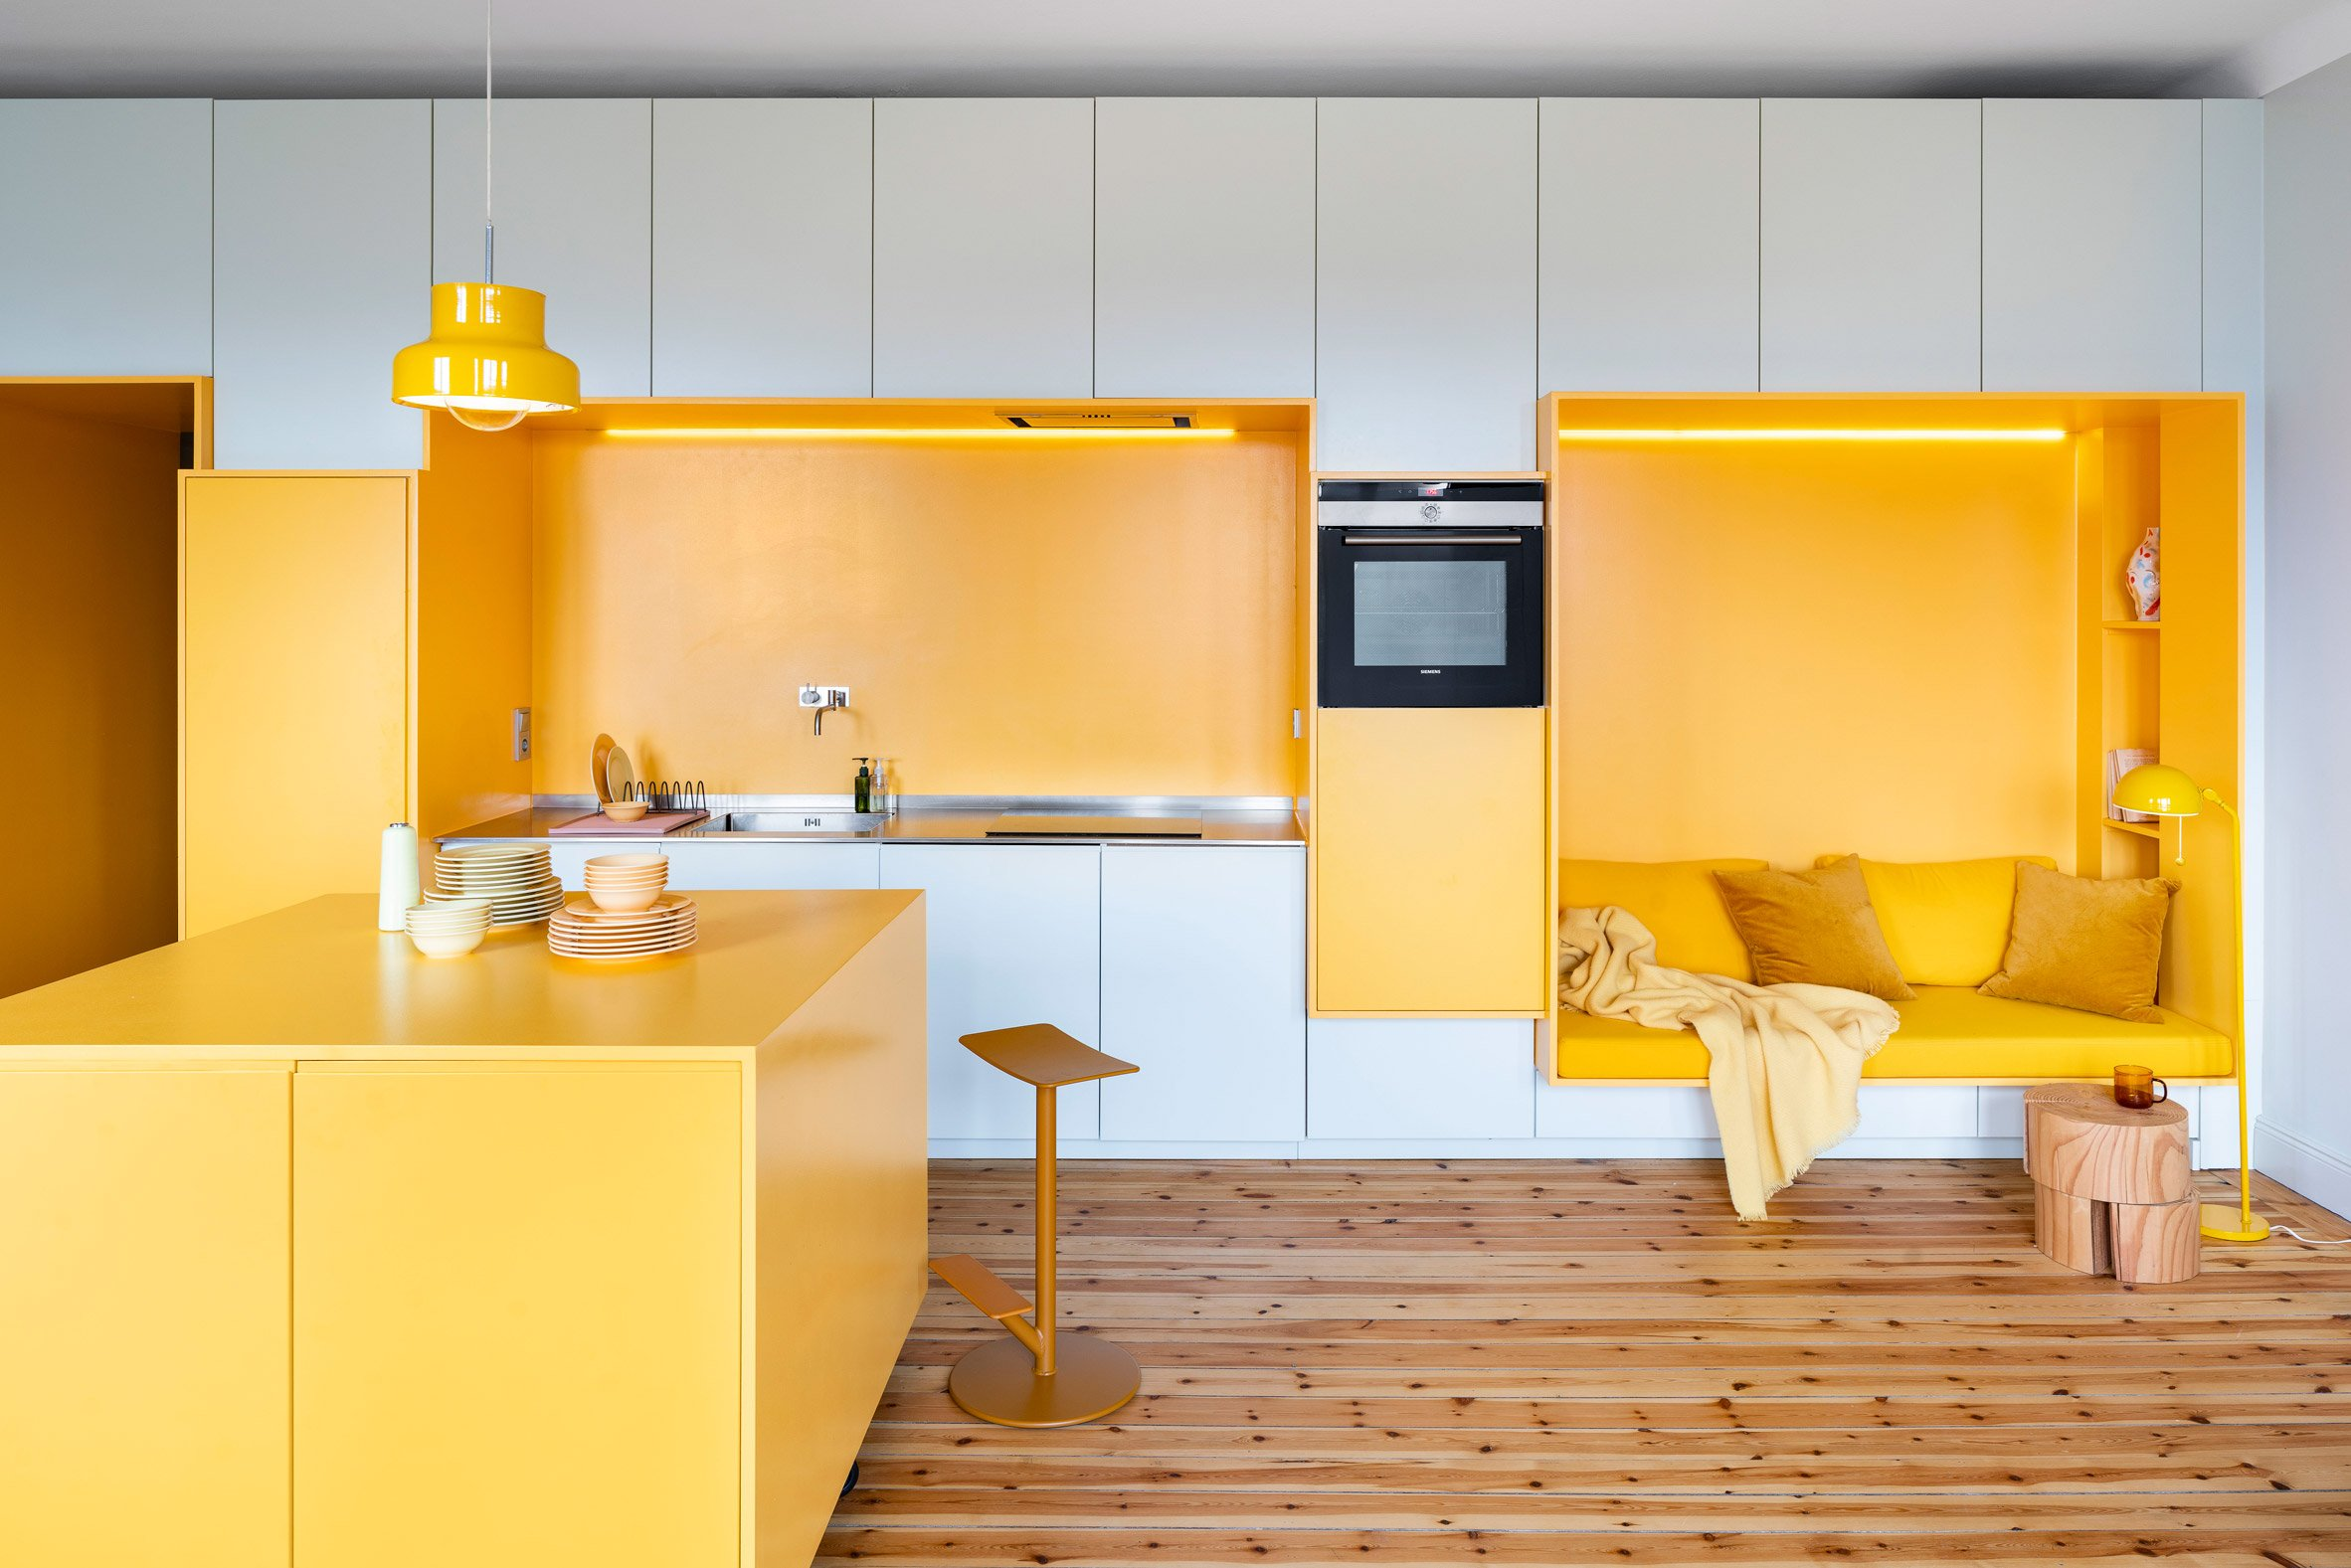 Function Walls apartment, designed by Lookofsky Architecture